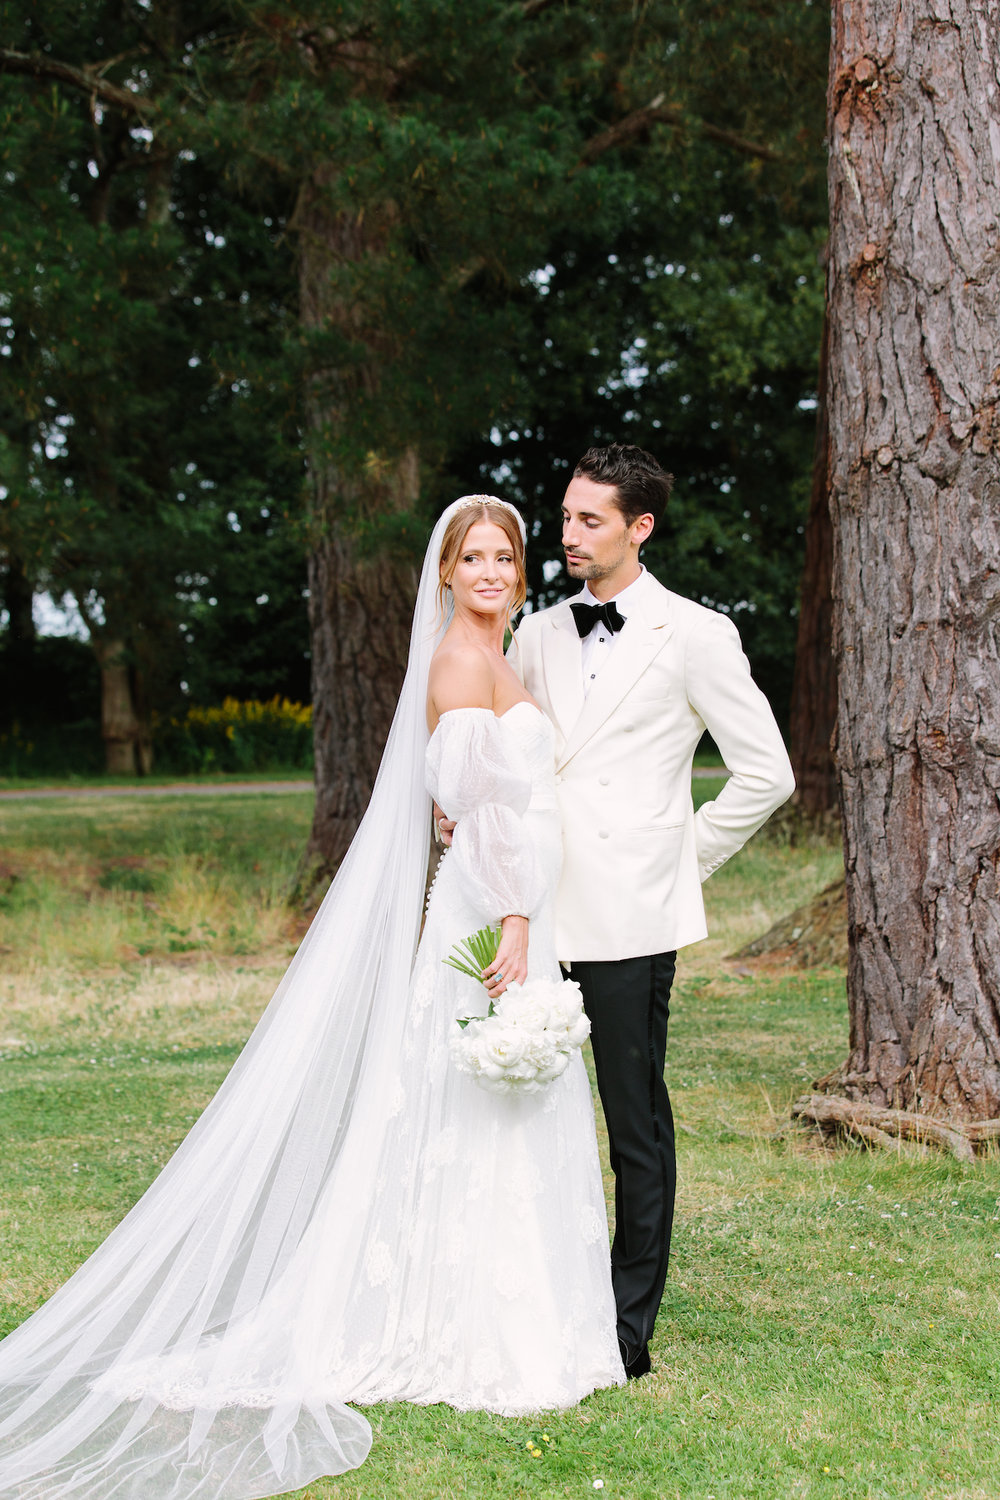 Millie Mackintosh wore a bespoke wedding dress by Halfpenny London